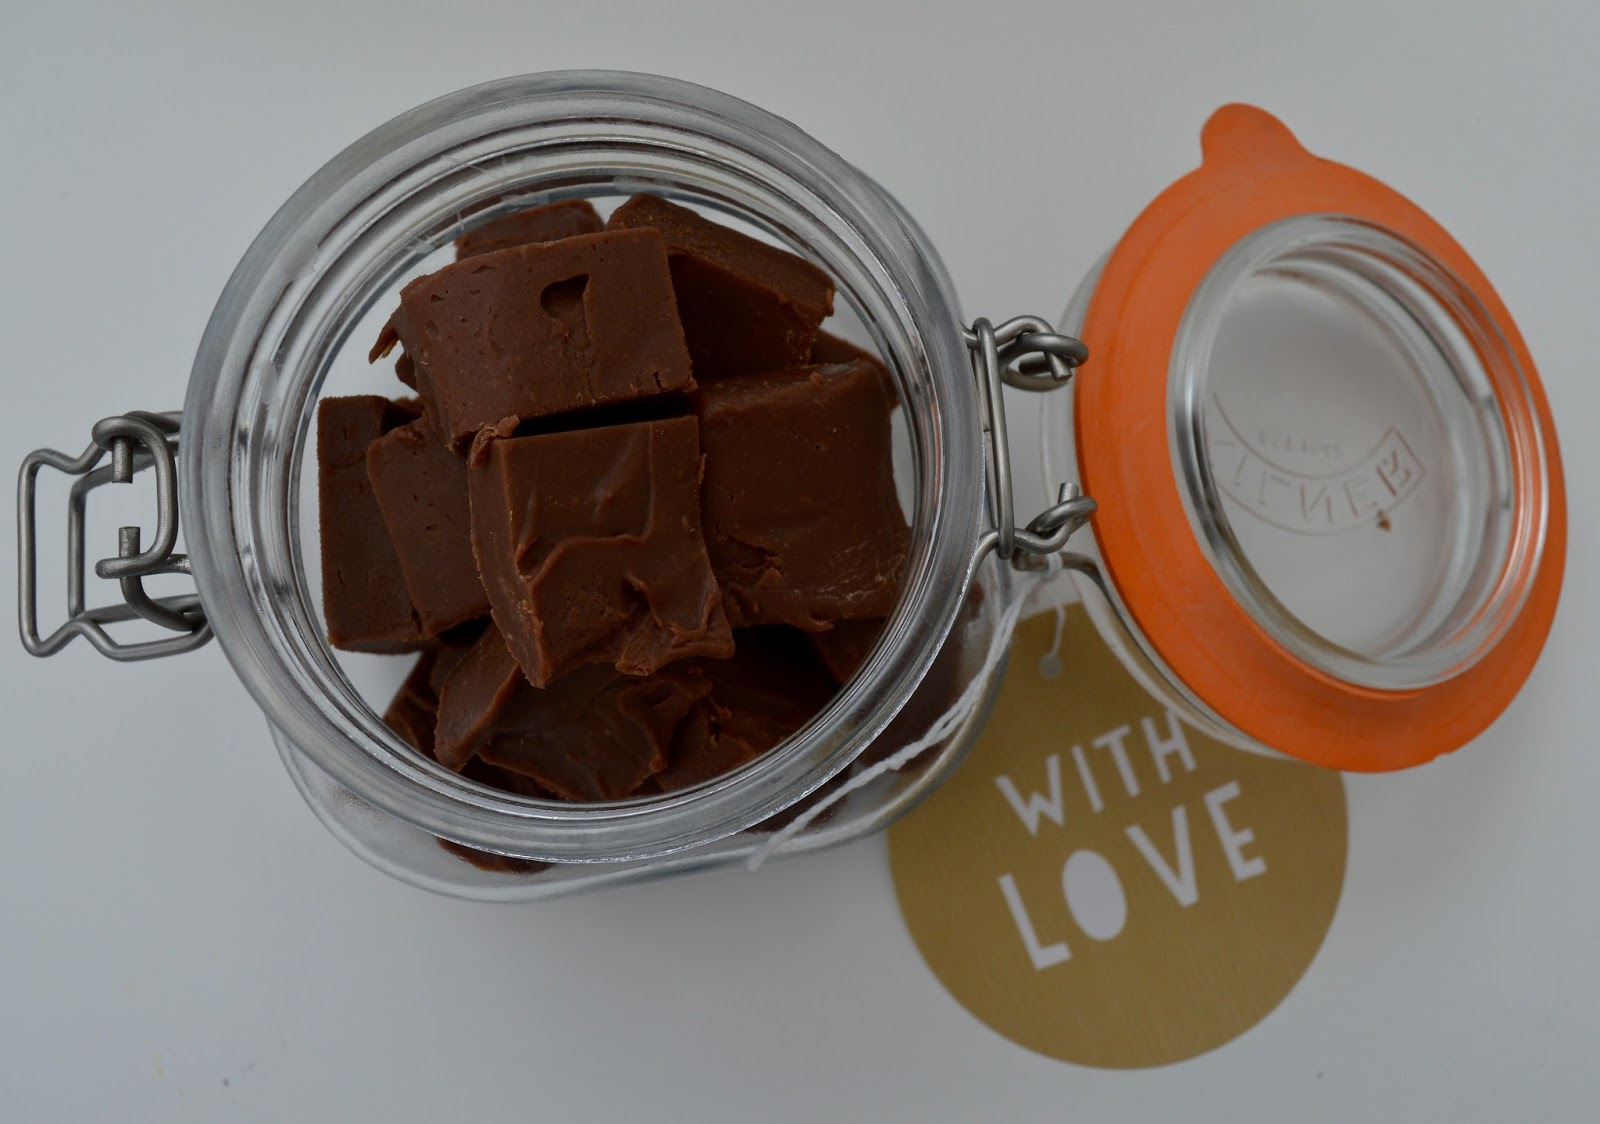 Terry's Chocolate Orange Slow Cooker Fudge Recipe - A Homemade & Edible Christmas Gift  - finished result presented in Mason Jars